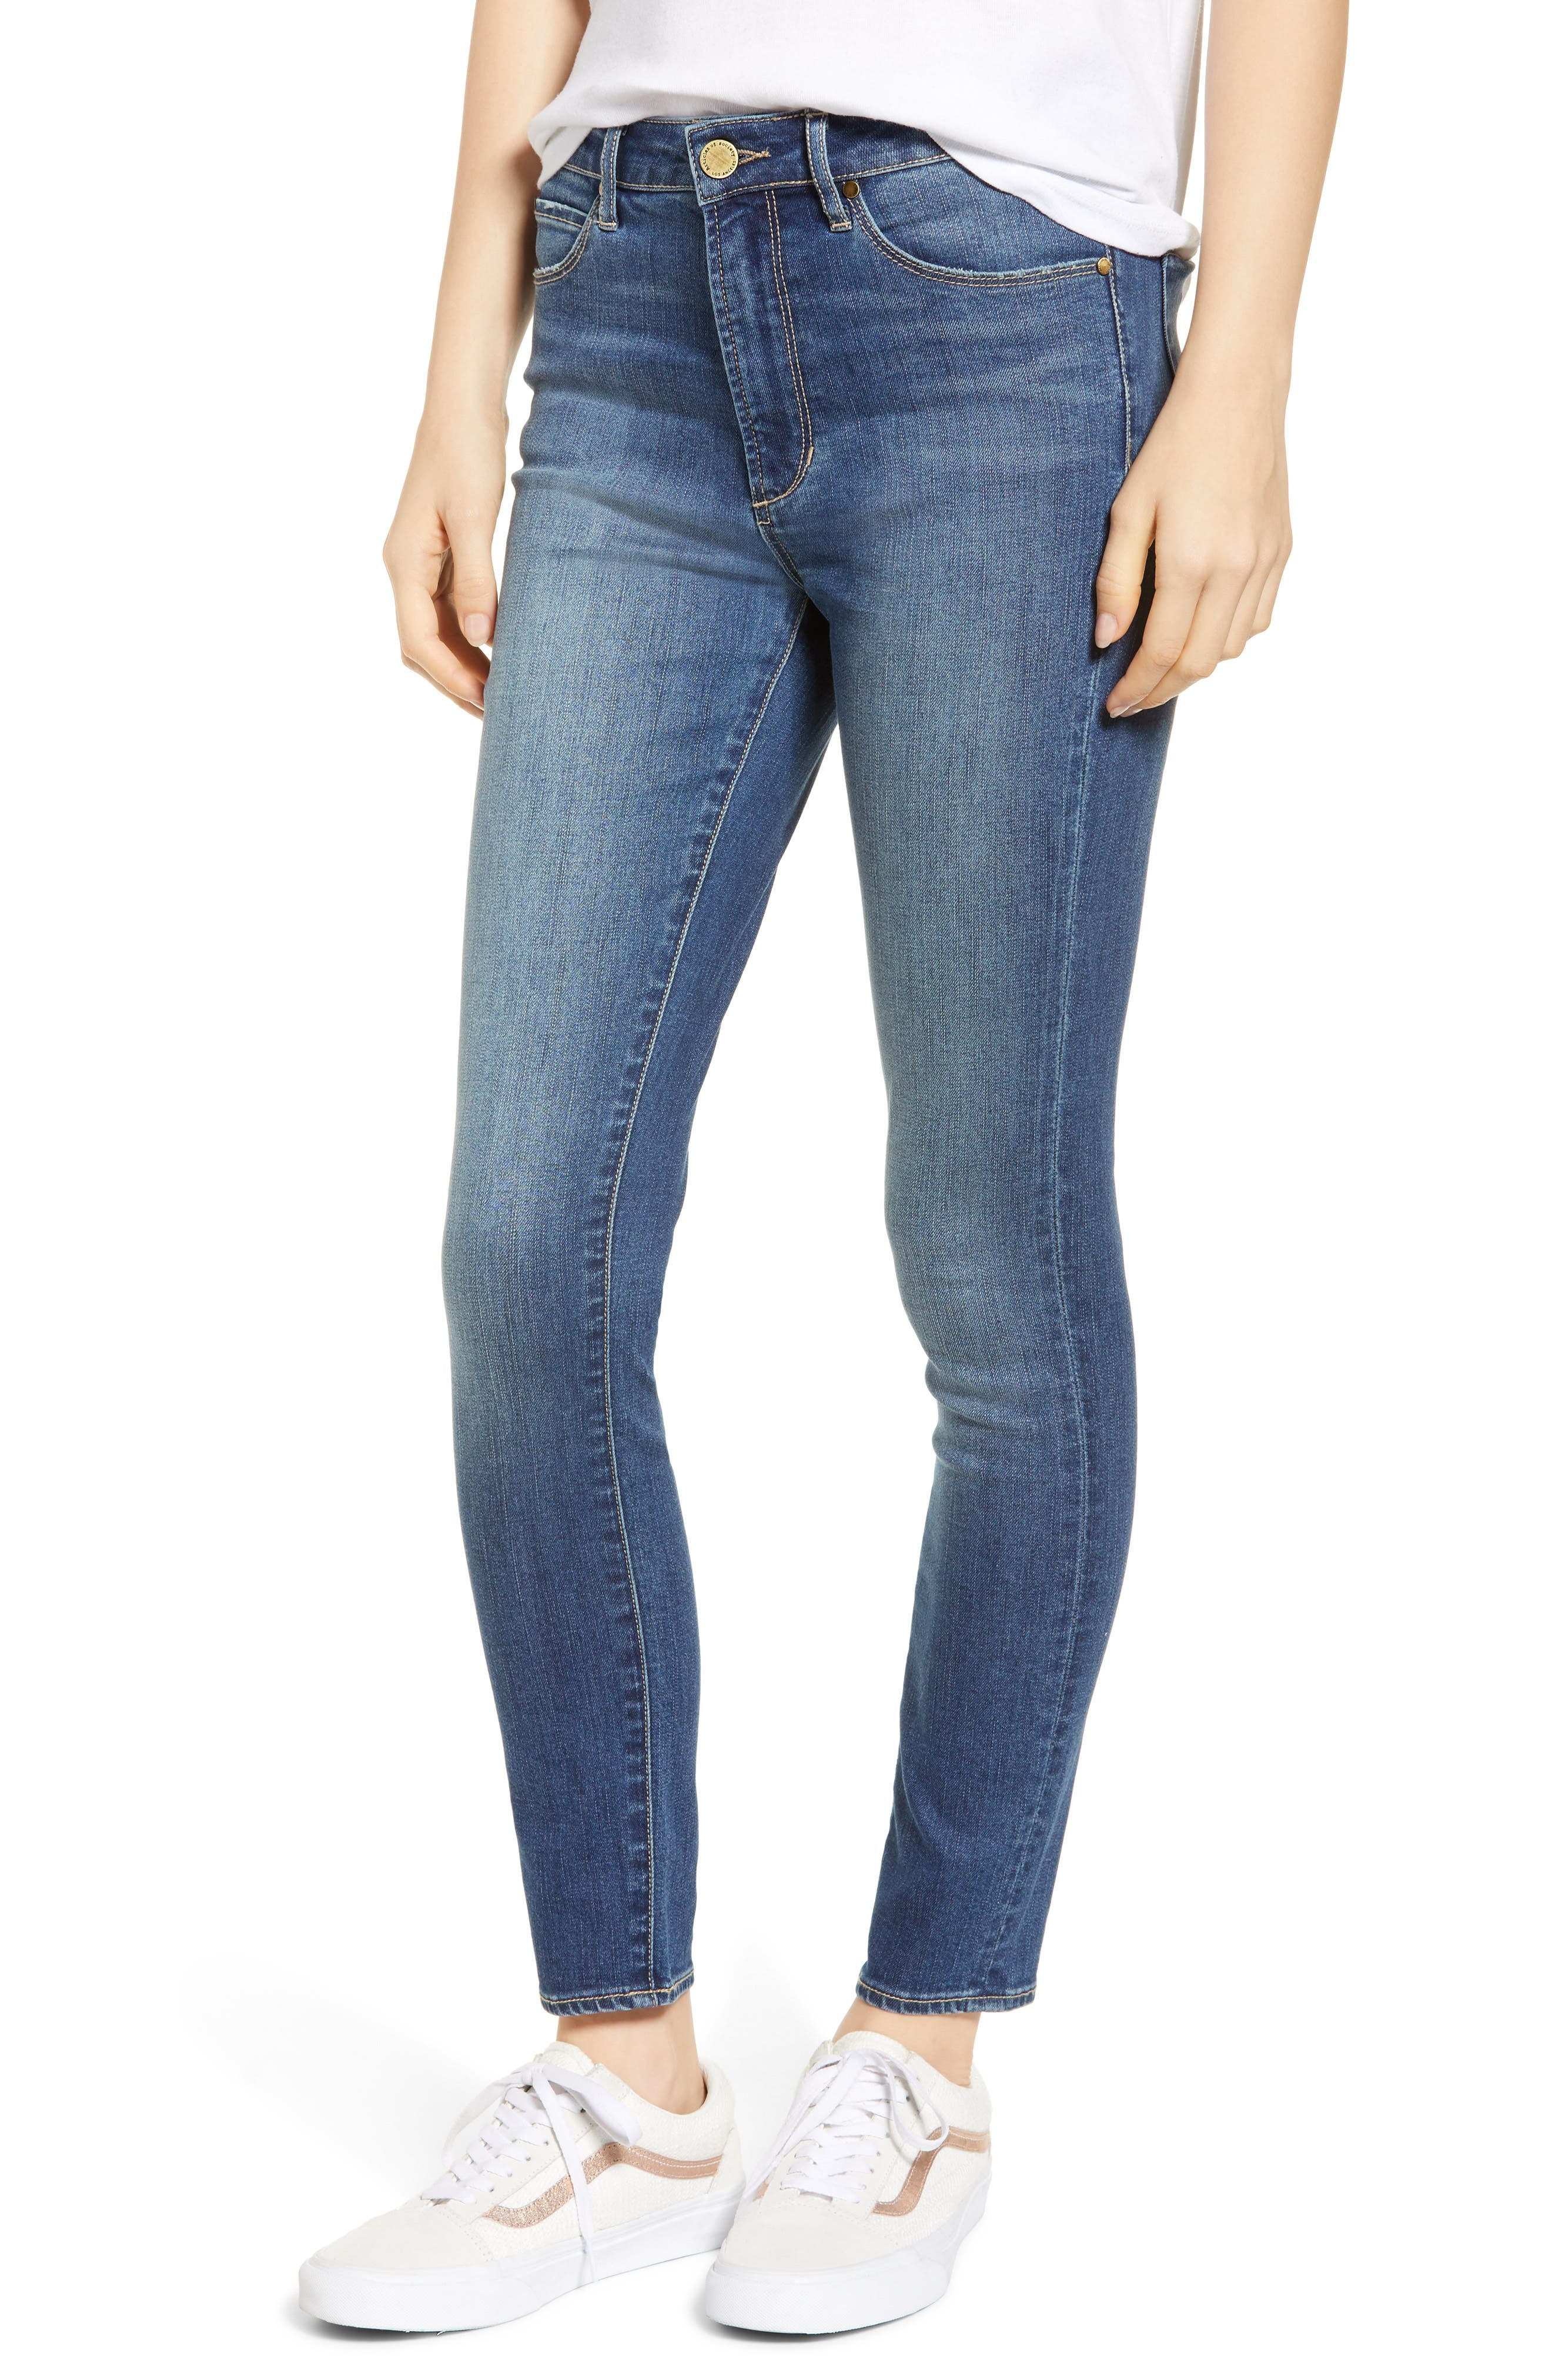 ARTICLES OF SOCIETY Heather High Waist Ankle Skinny Jeans in Stony Hill